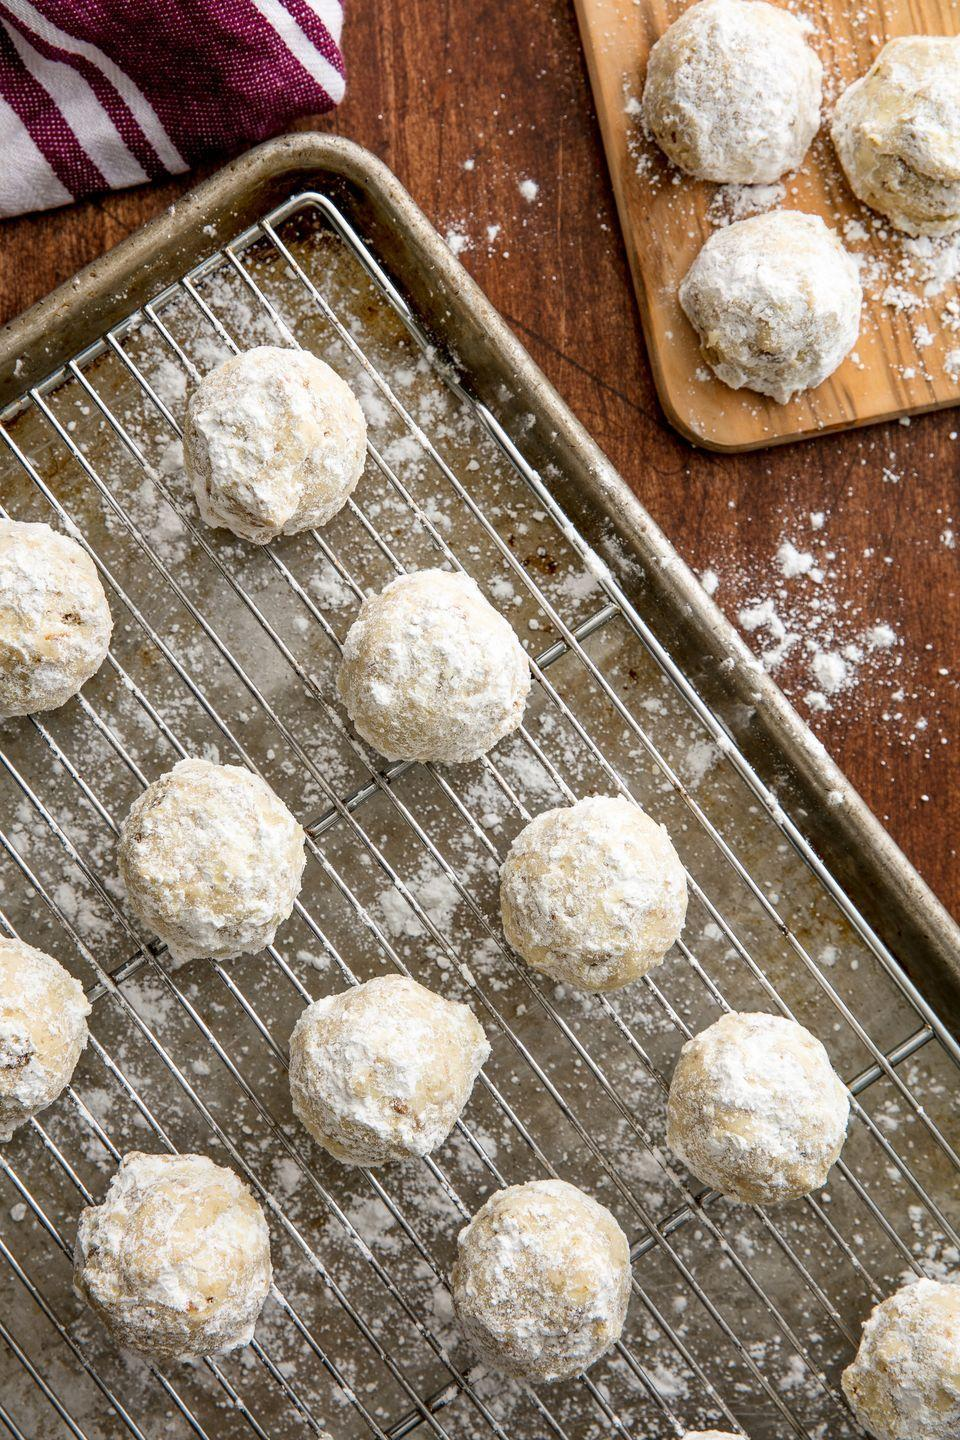 "<p>Even if it isn't a winter wonderland where you live, these cookies will bring the Christmas cheer. </p><p>Get the recipe from <a href=""https://www.delish.com/cooking/recipe-ideas/recipes/a56364/best-snowball-cookies-recipe/"" rel=""nofollow noopener"" target=""_blank"" data-ylk=""slk:Delish"" class=""link rapid-noclick-resp"">Delish</a>. </p>"